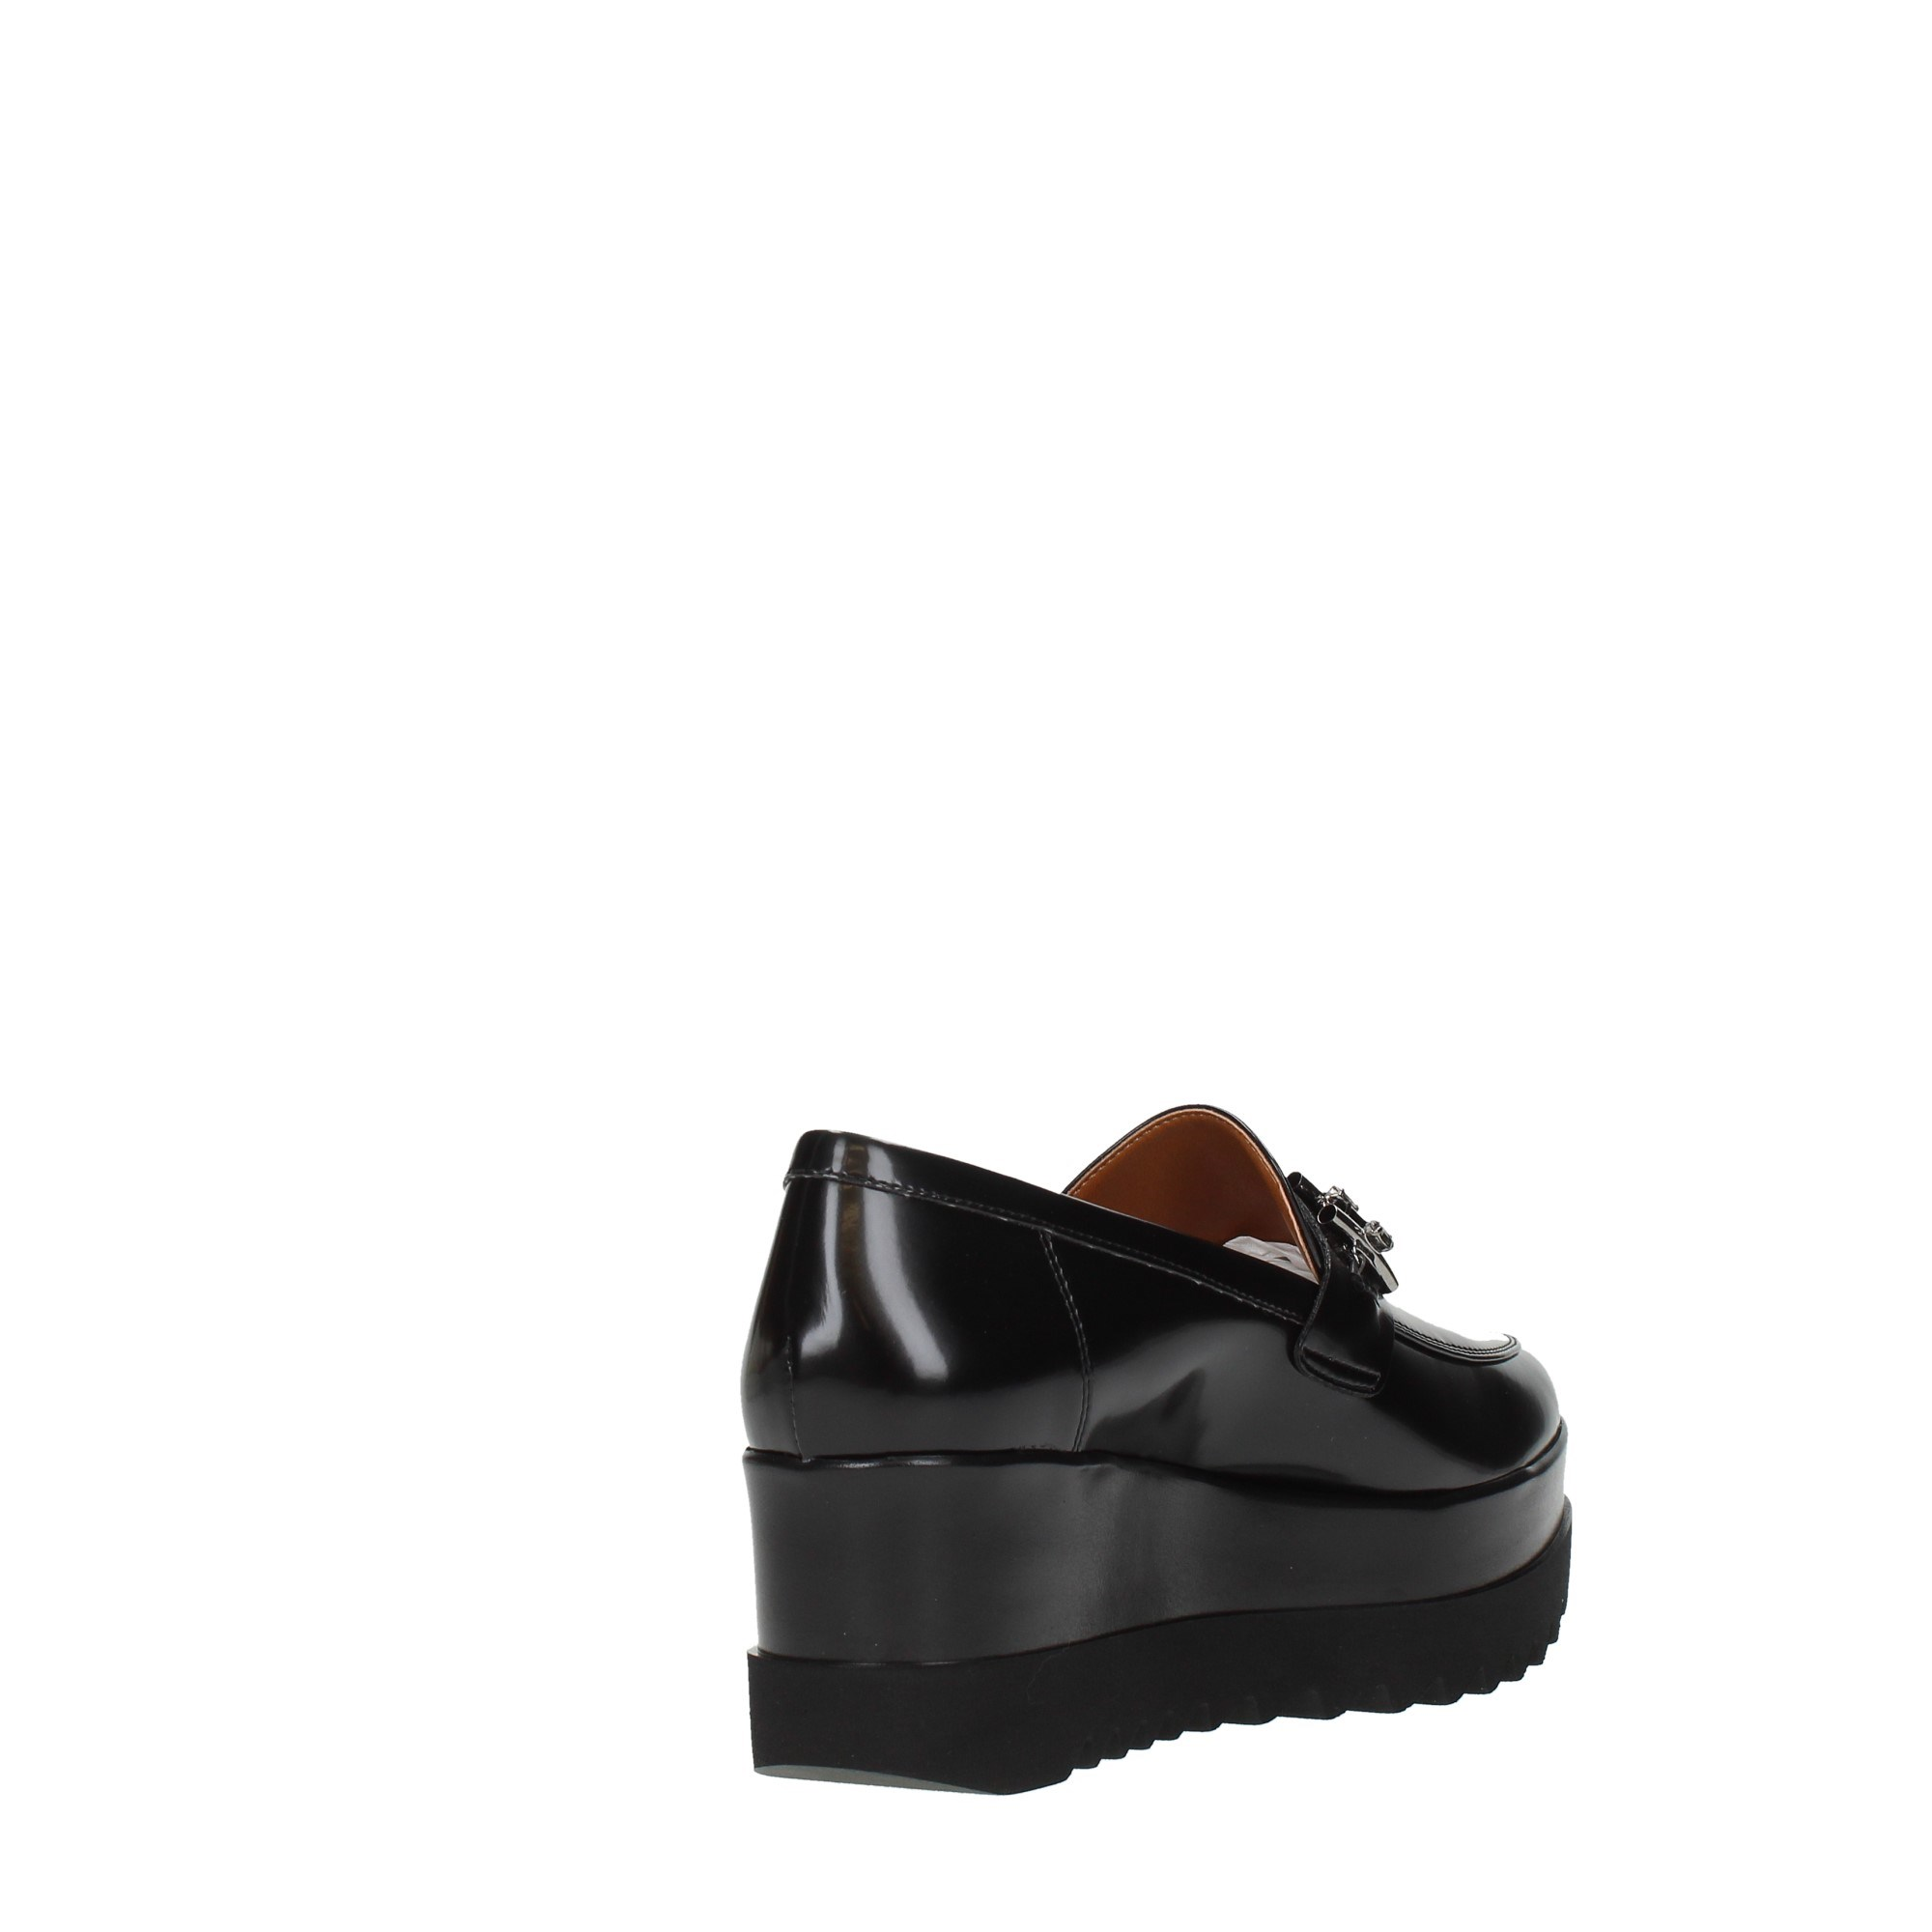 Lorenzo Mari Shoes Women Moccasins And Slippers Black 1743